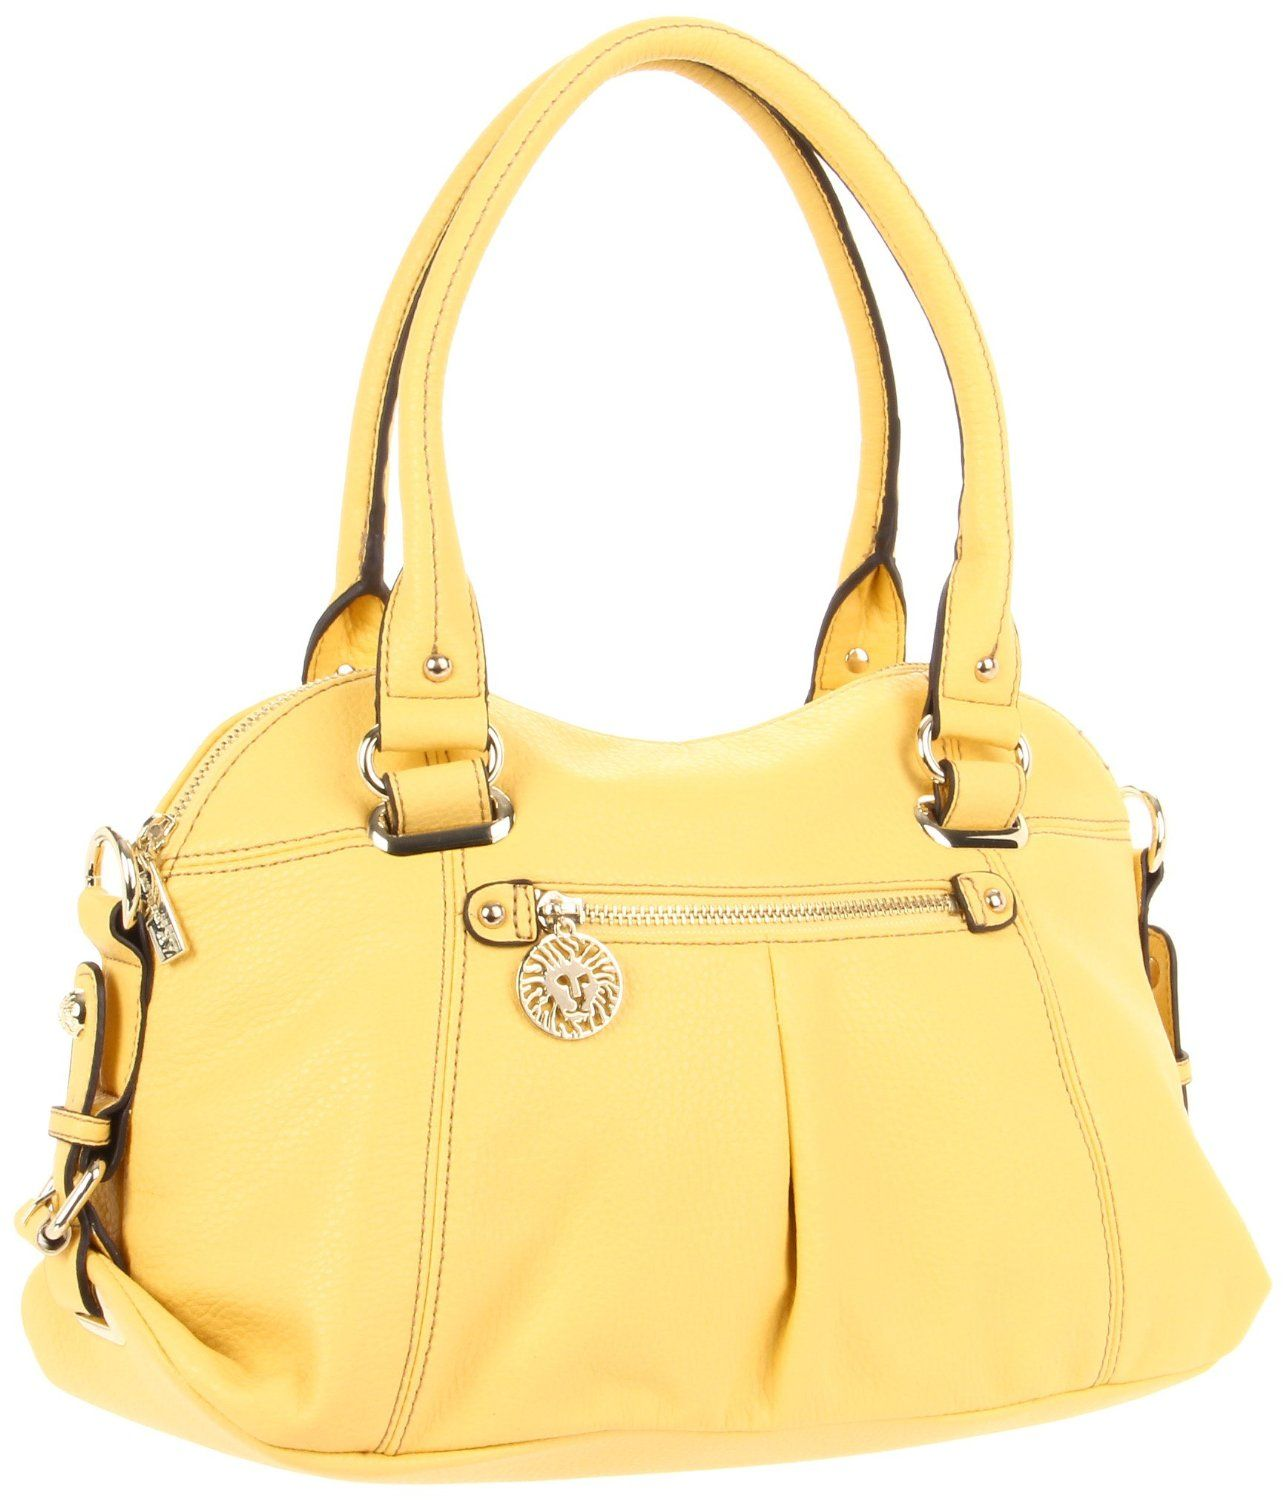 Oh Yes Another Anne Klein Yellow Purse